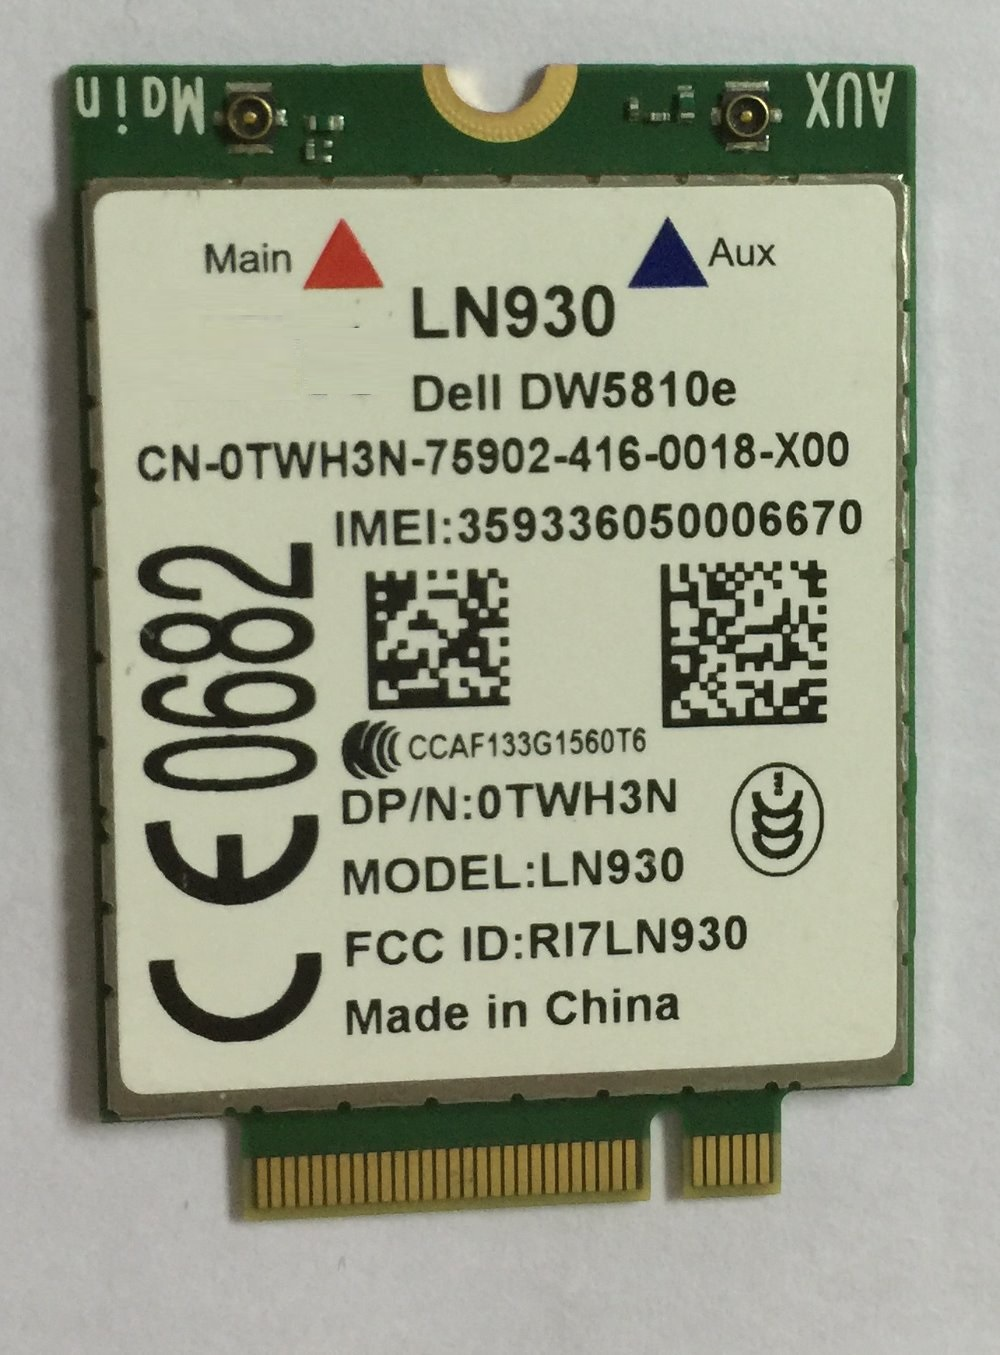 SSEA Telit LN930 NRR39 4G Wireless NGFF <font><b>Module</b></font> PN: 0TWH3N WWAN Card for Dell Wireless DW5810e Venue 11 Pro 4G/LTE/DC-HSPA+ WWAN image